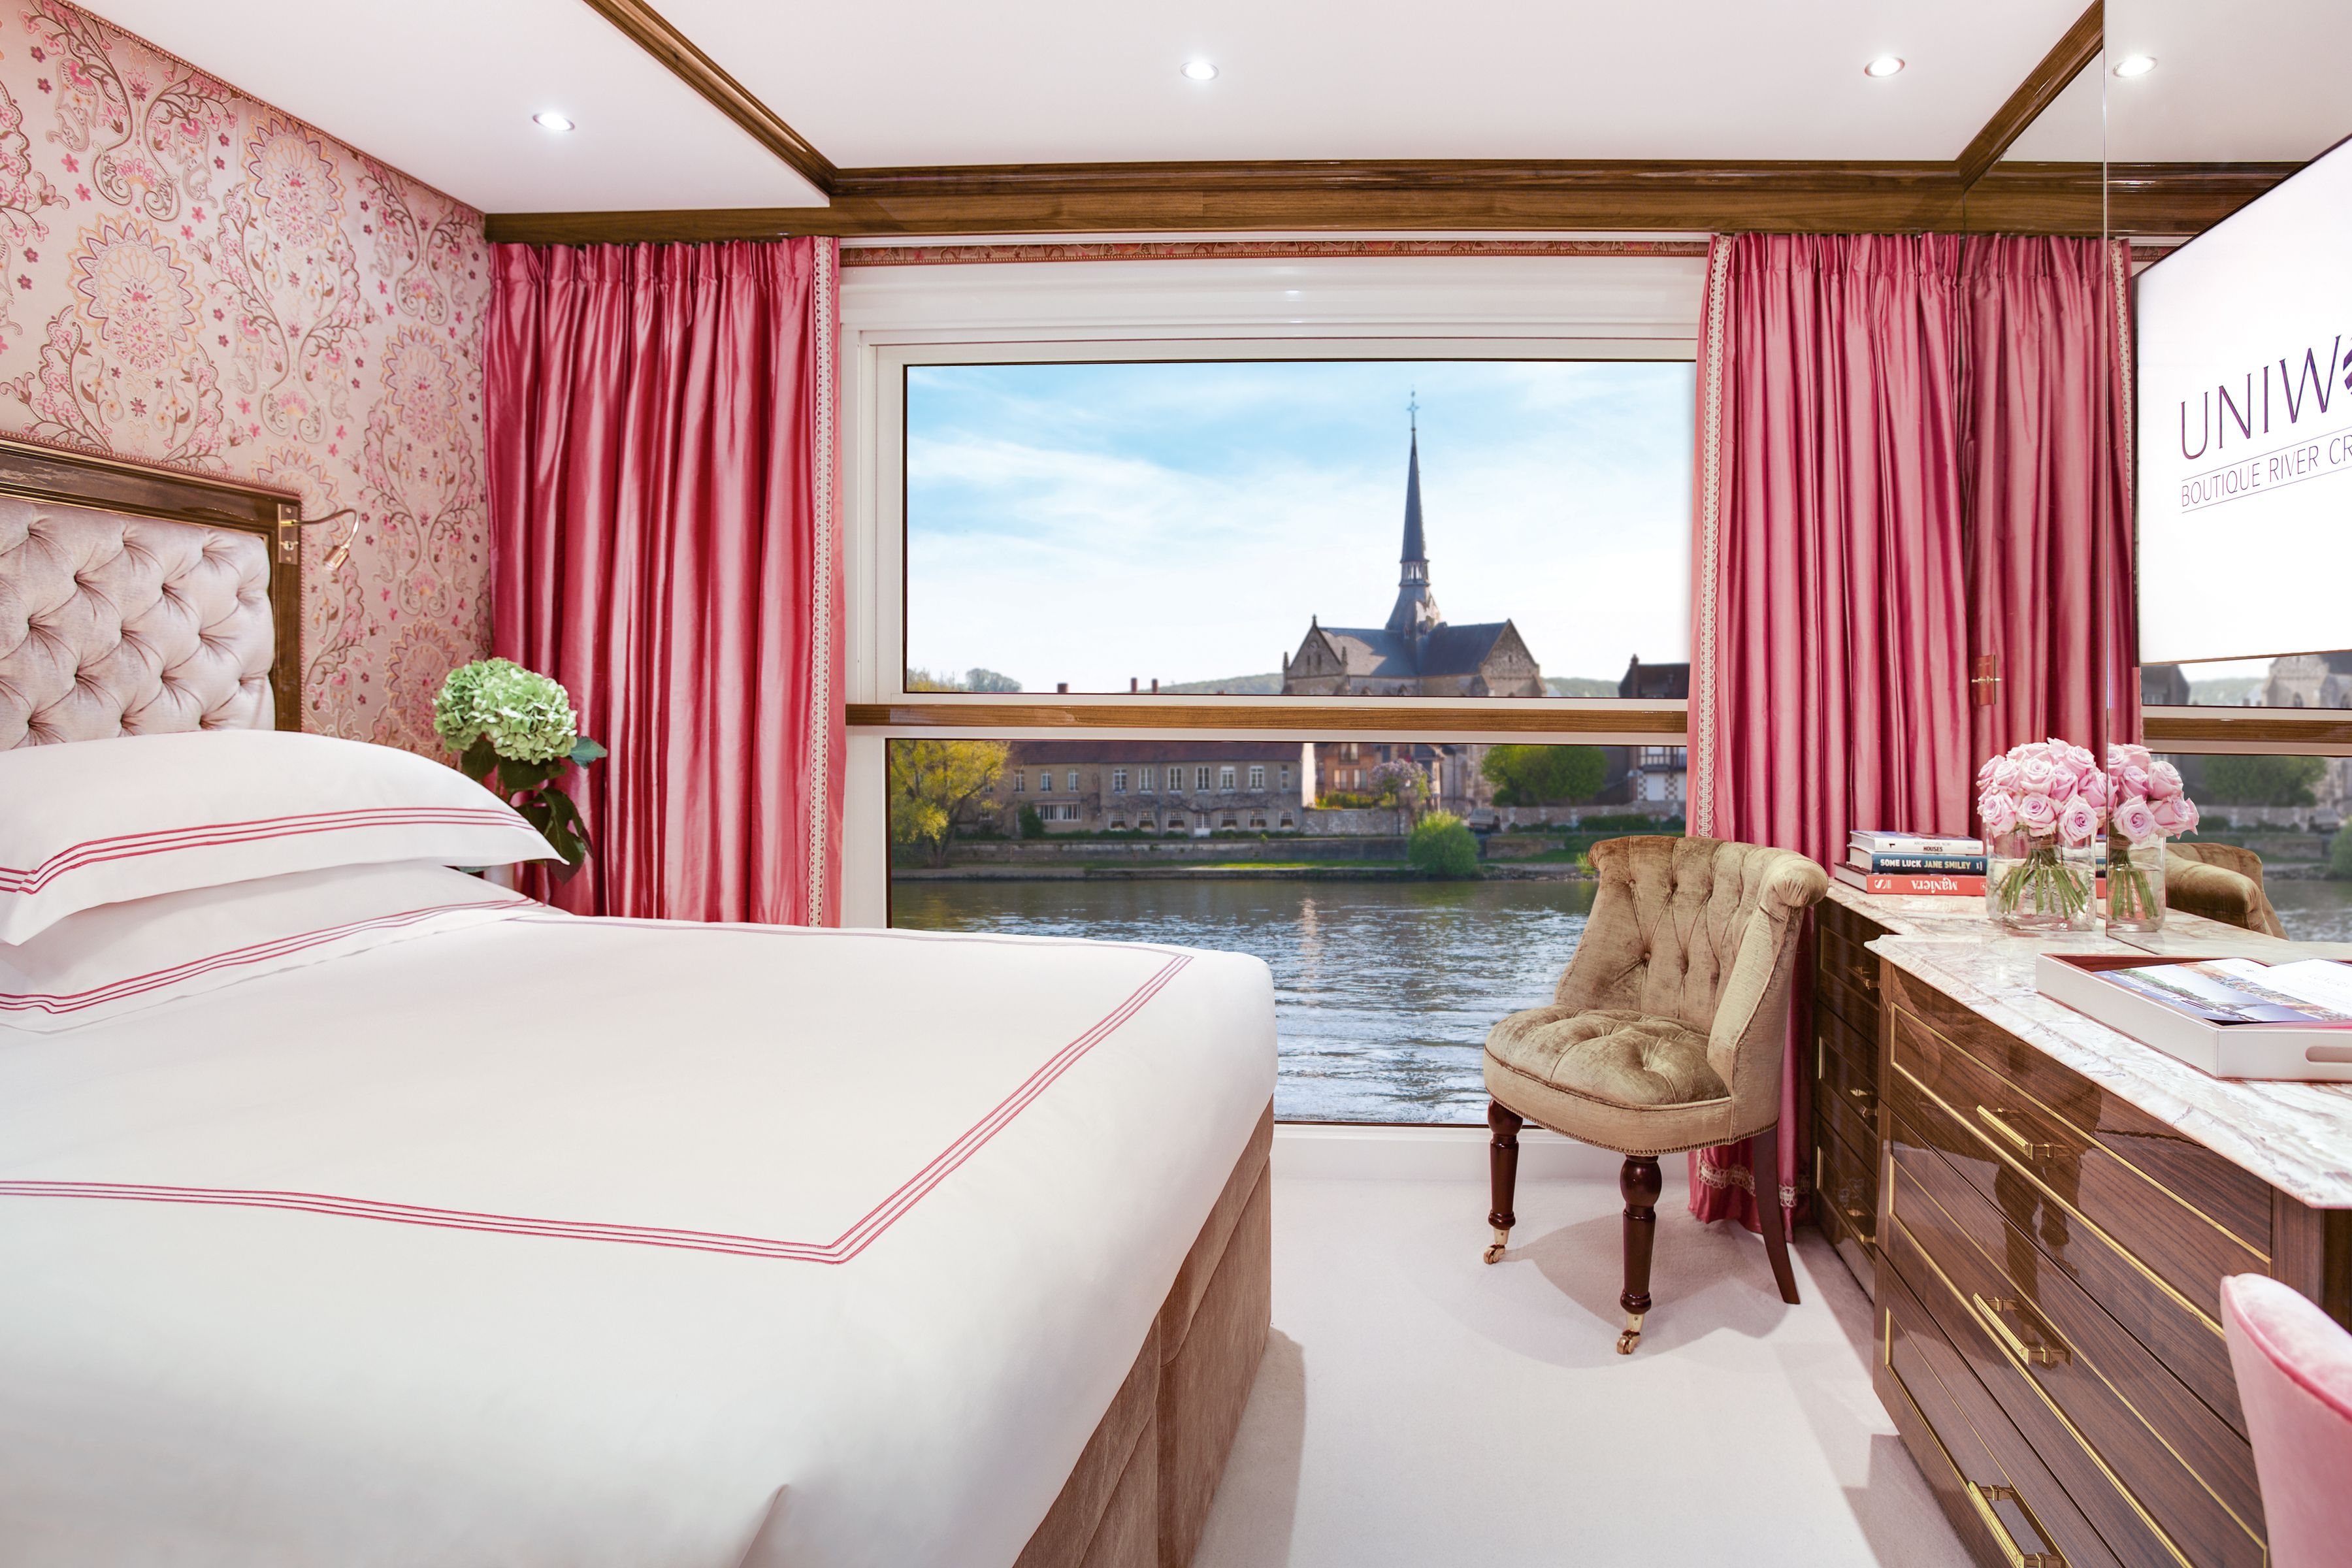 the ss joie de vivre is the first of its kind to sail the seine river